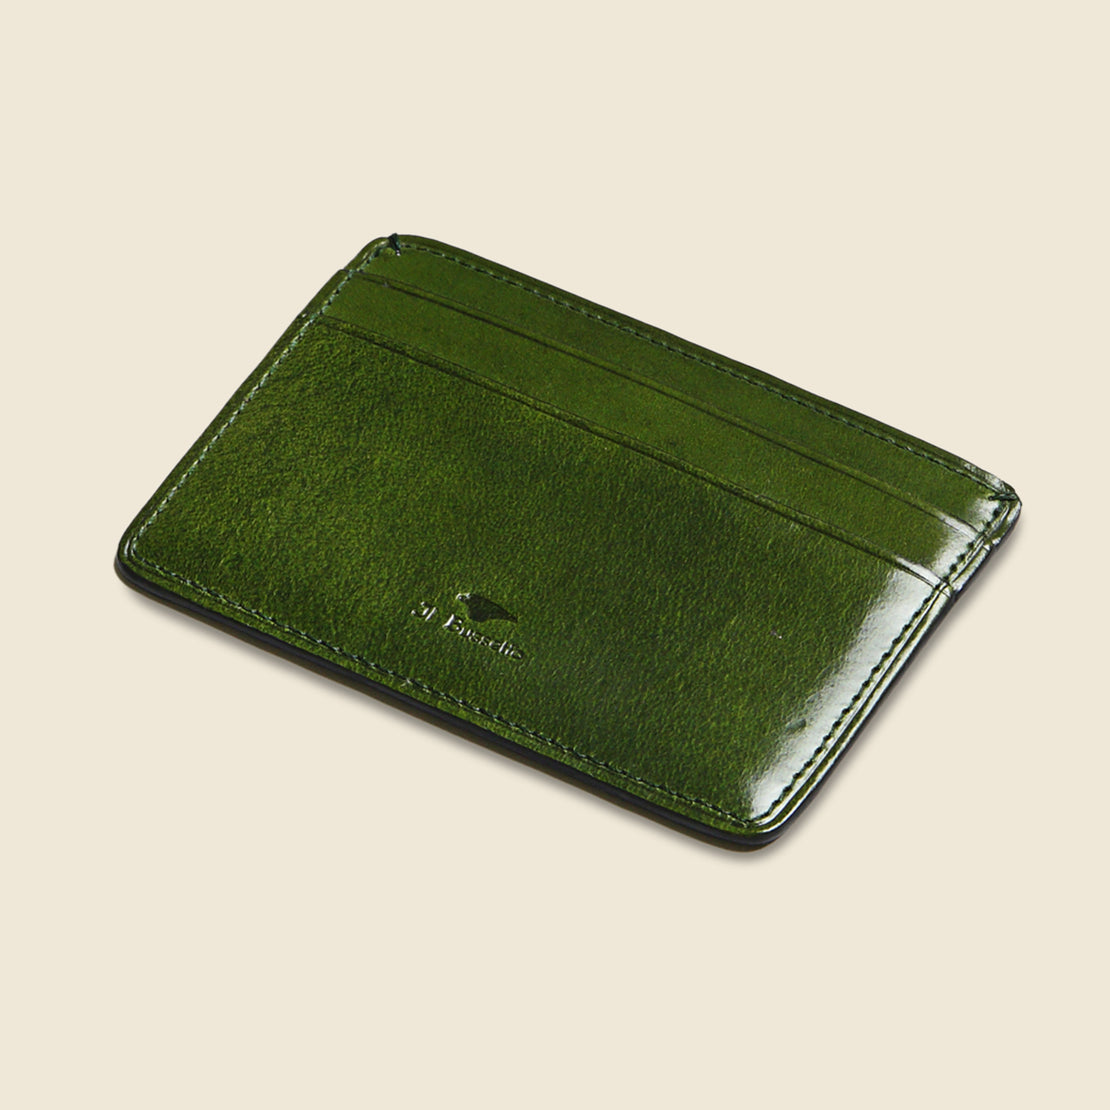 Credit Card Case - Green - Il Bussetto - STAG Provisions - Accessories - Wallets